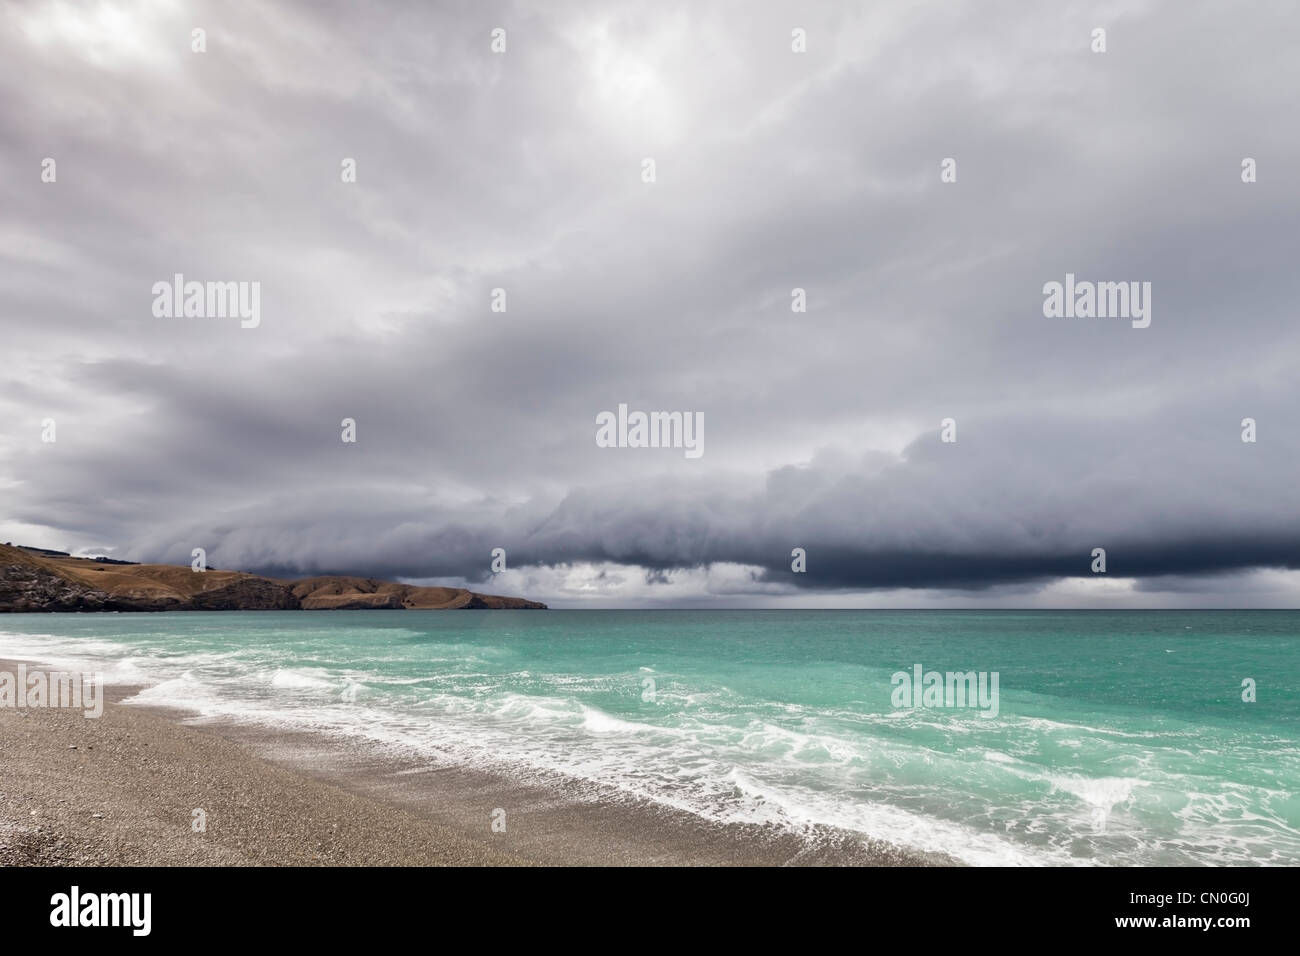 The shingle beach at Birdlings Flat, on Banks Peninsula, Canterbury, New Zealand, with a southerly front approaching. - Stock Image